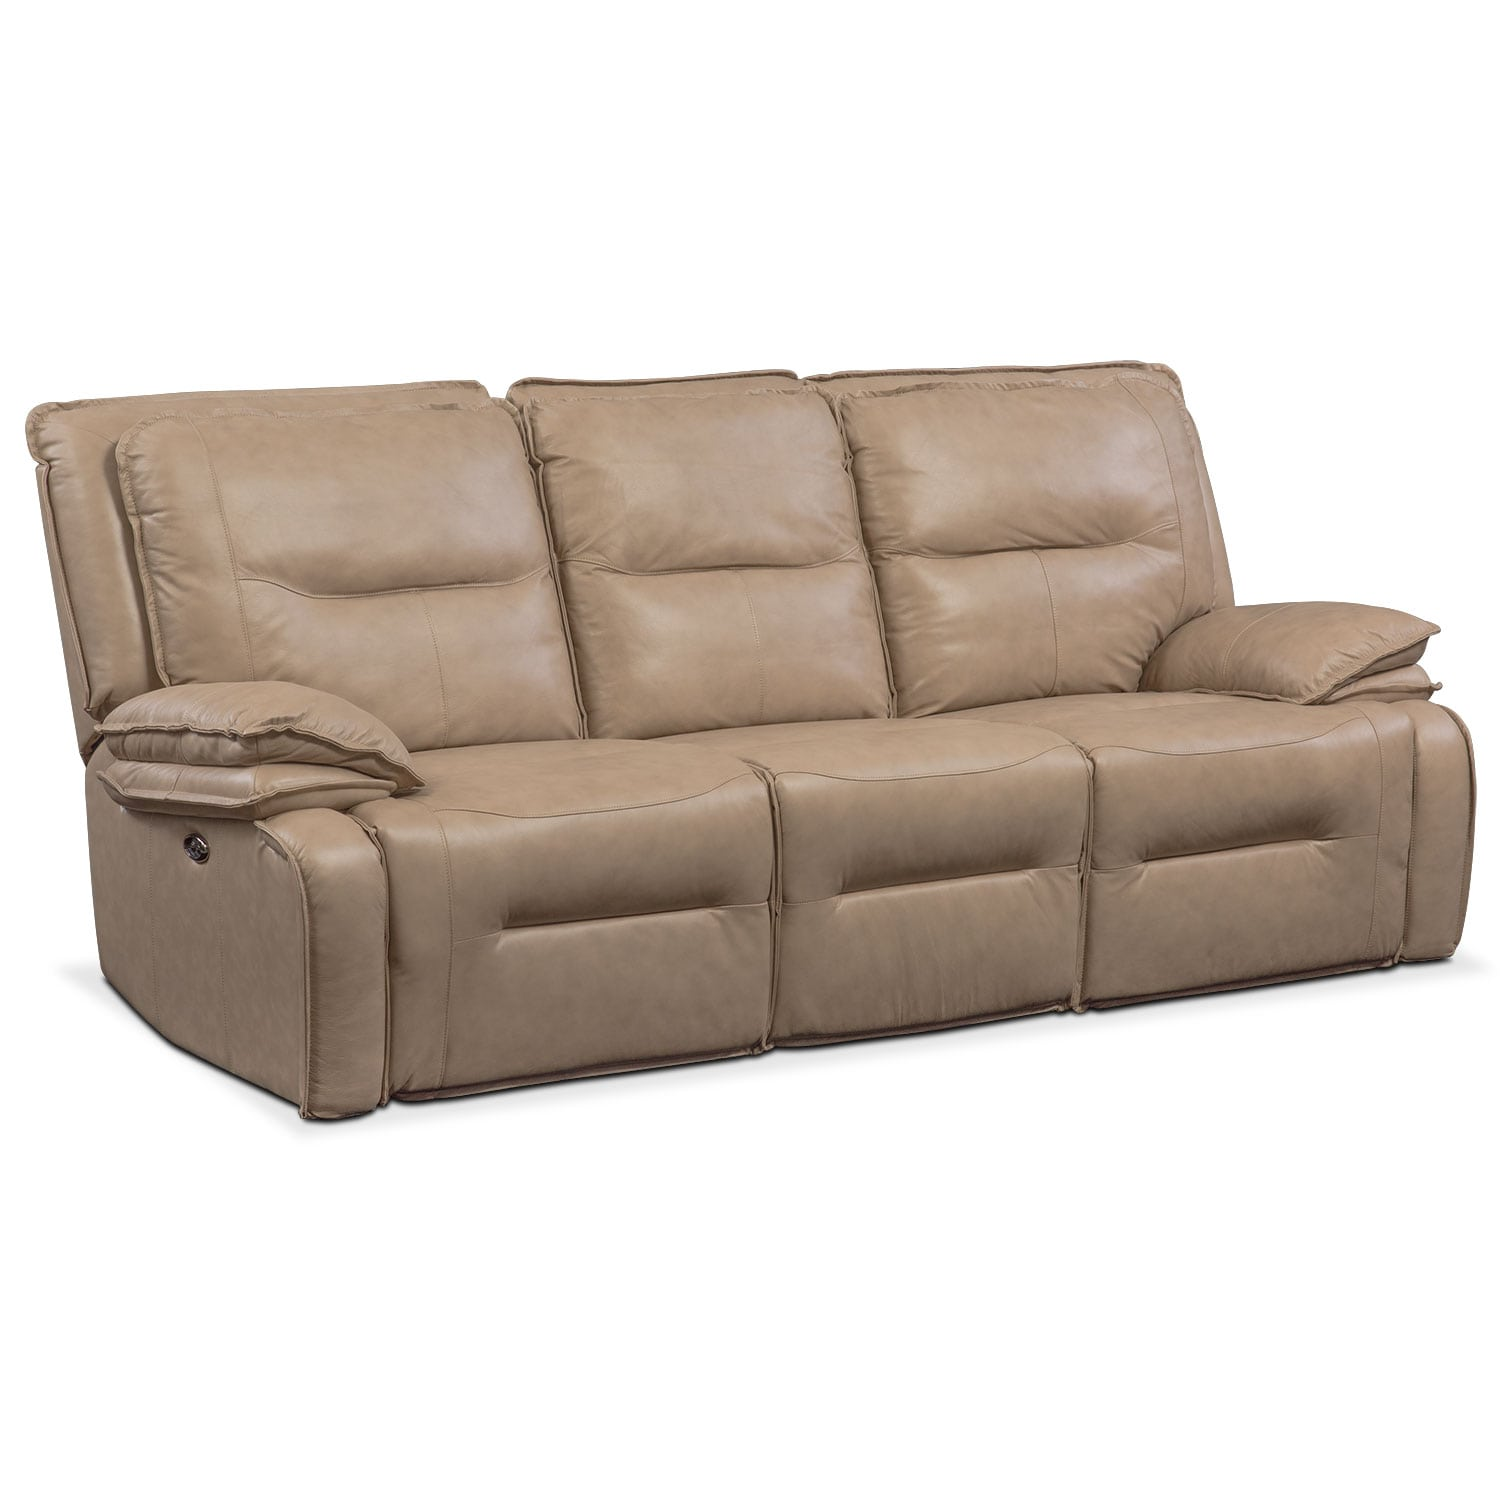 Living Room Furniture - Nikki 3-Piece Power Reclining Sectional with 3 Recliners - Taupe